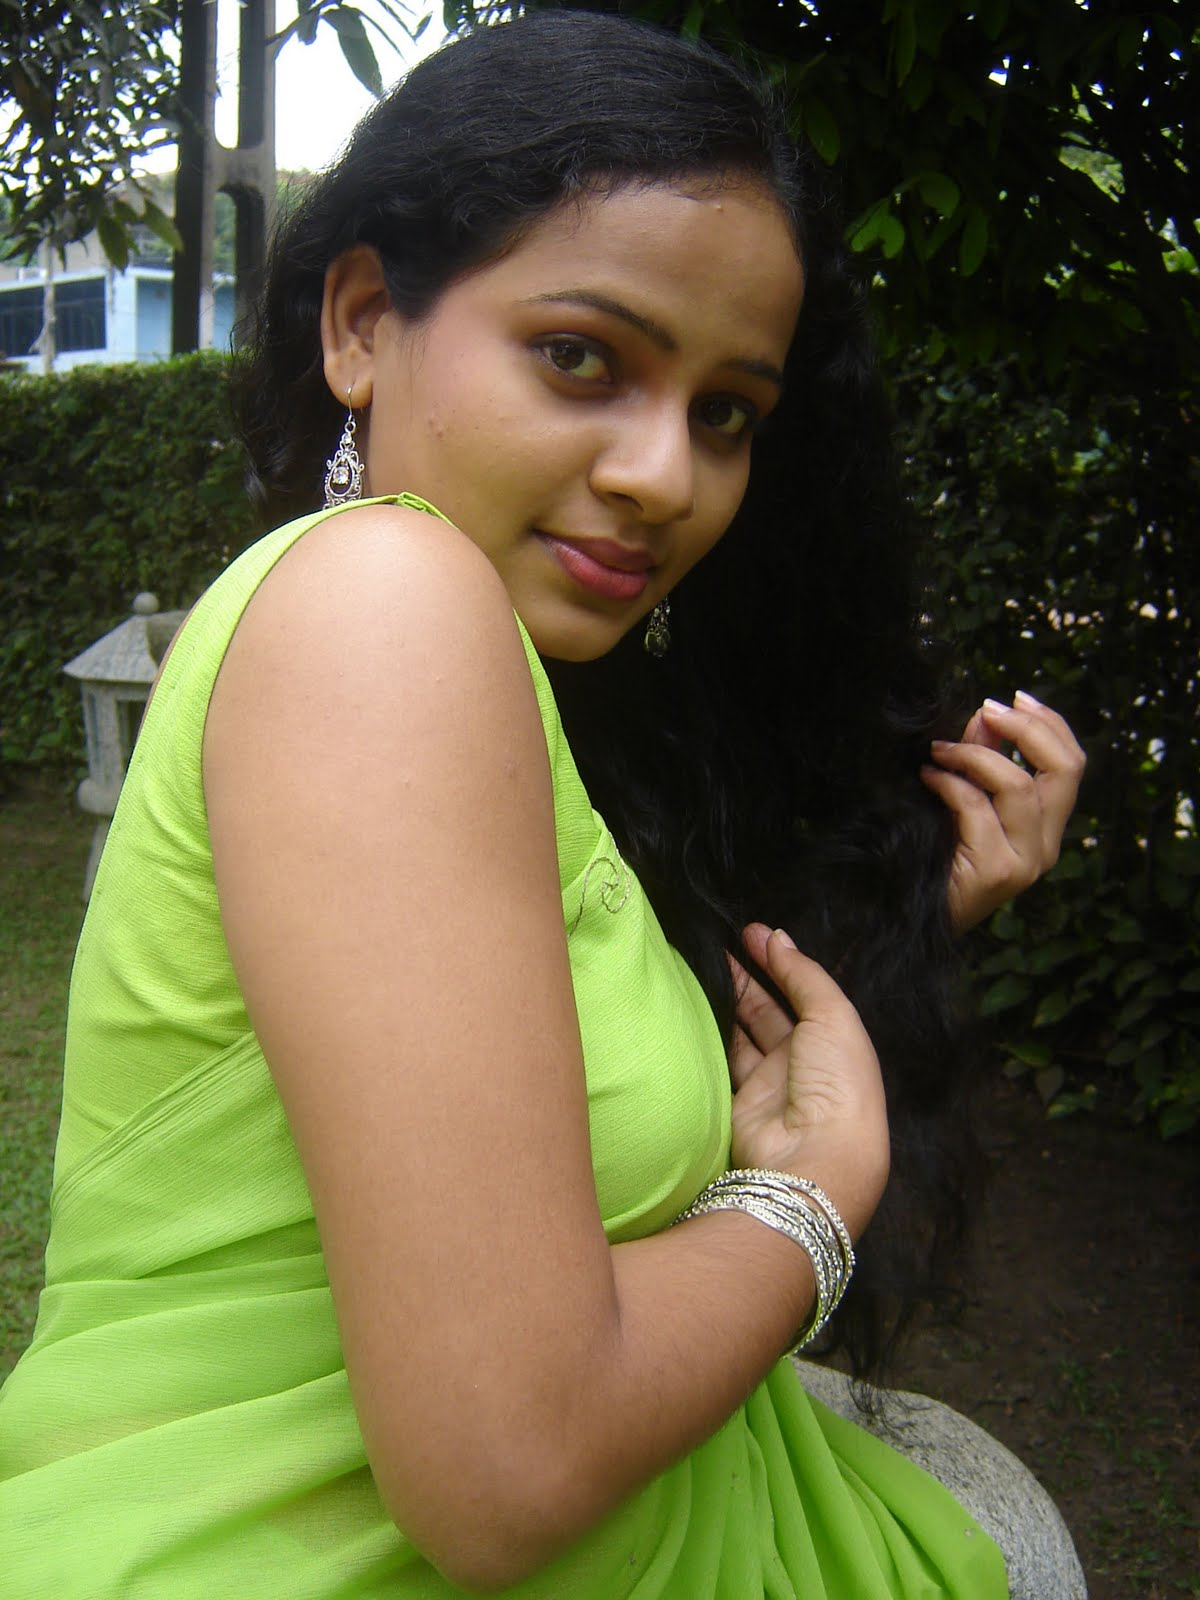 Sex girl photoes sri lanka splendid! wanna